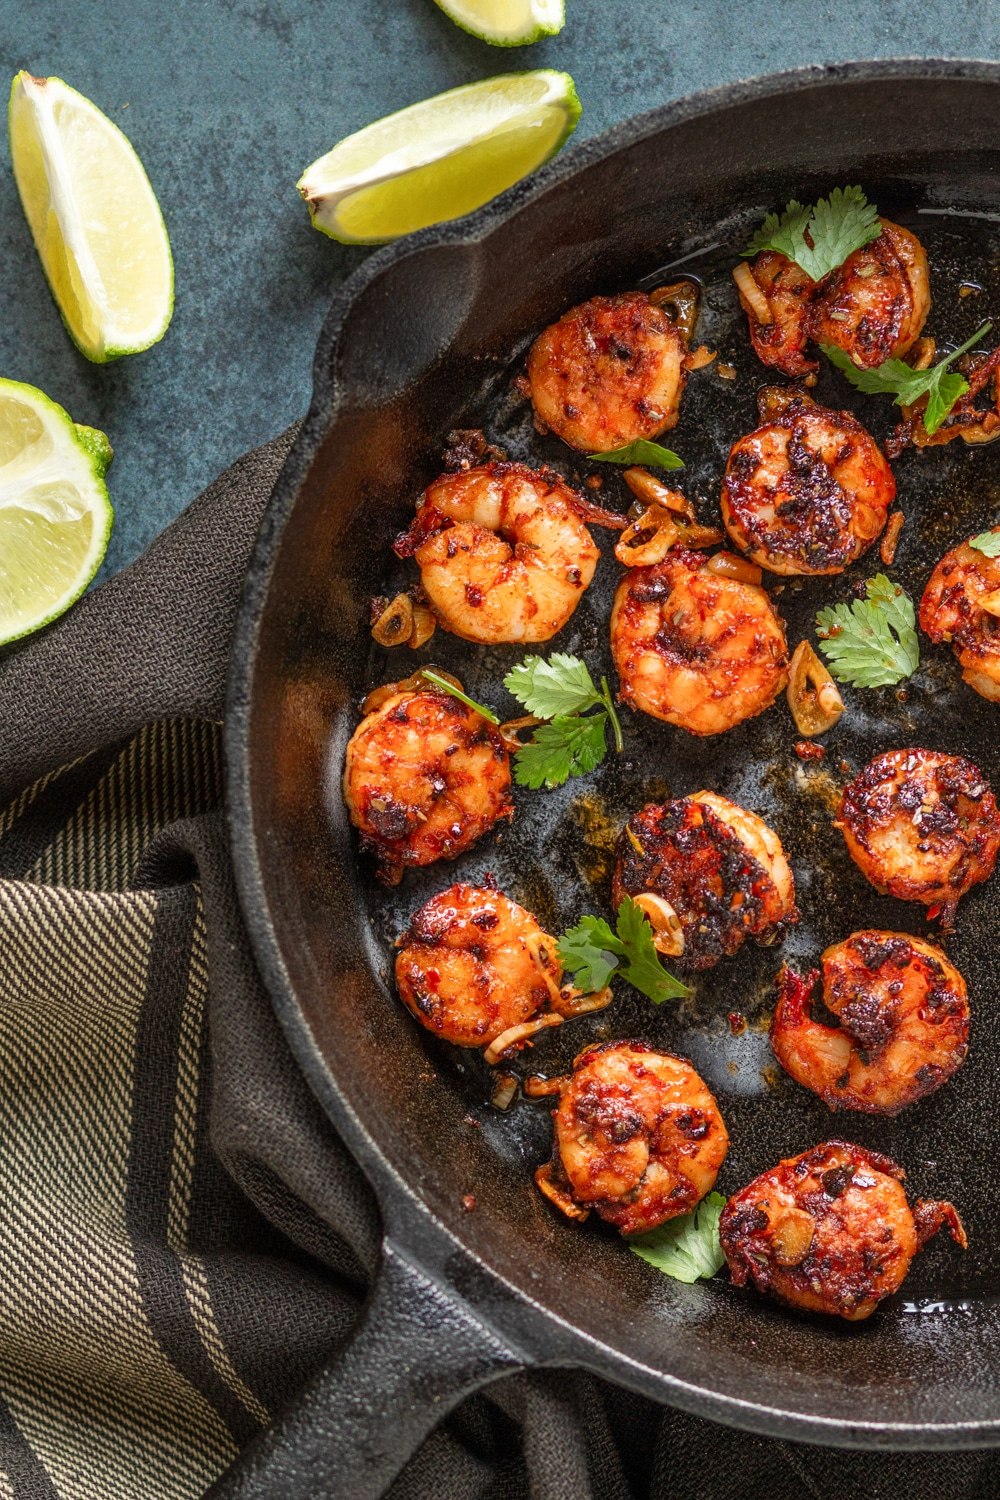 An overhead view of a skillet filled with several pieces of blackened shrimp. Below the skillet is a brown tablecloth and above that are a few slices of lime.